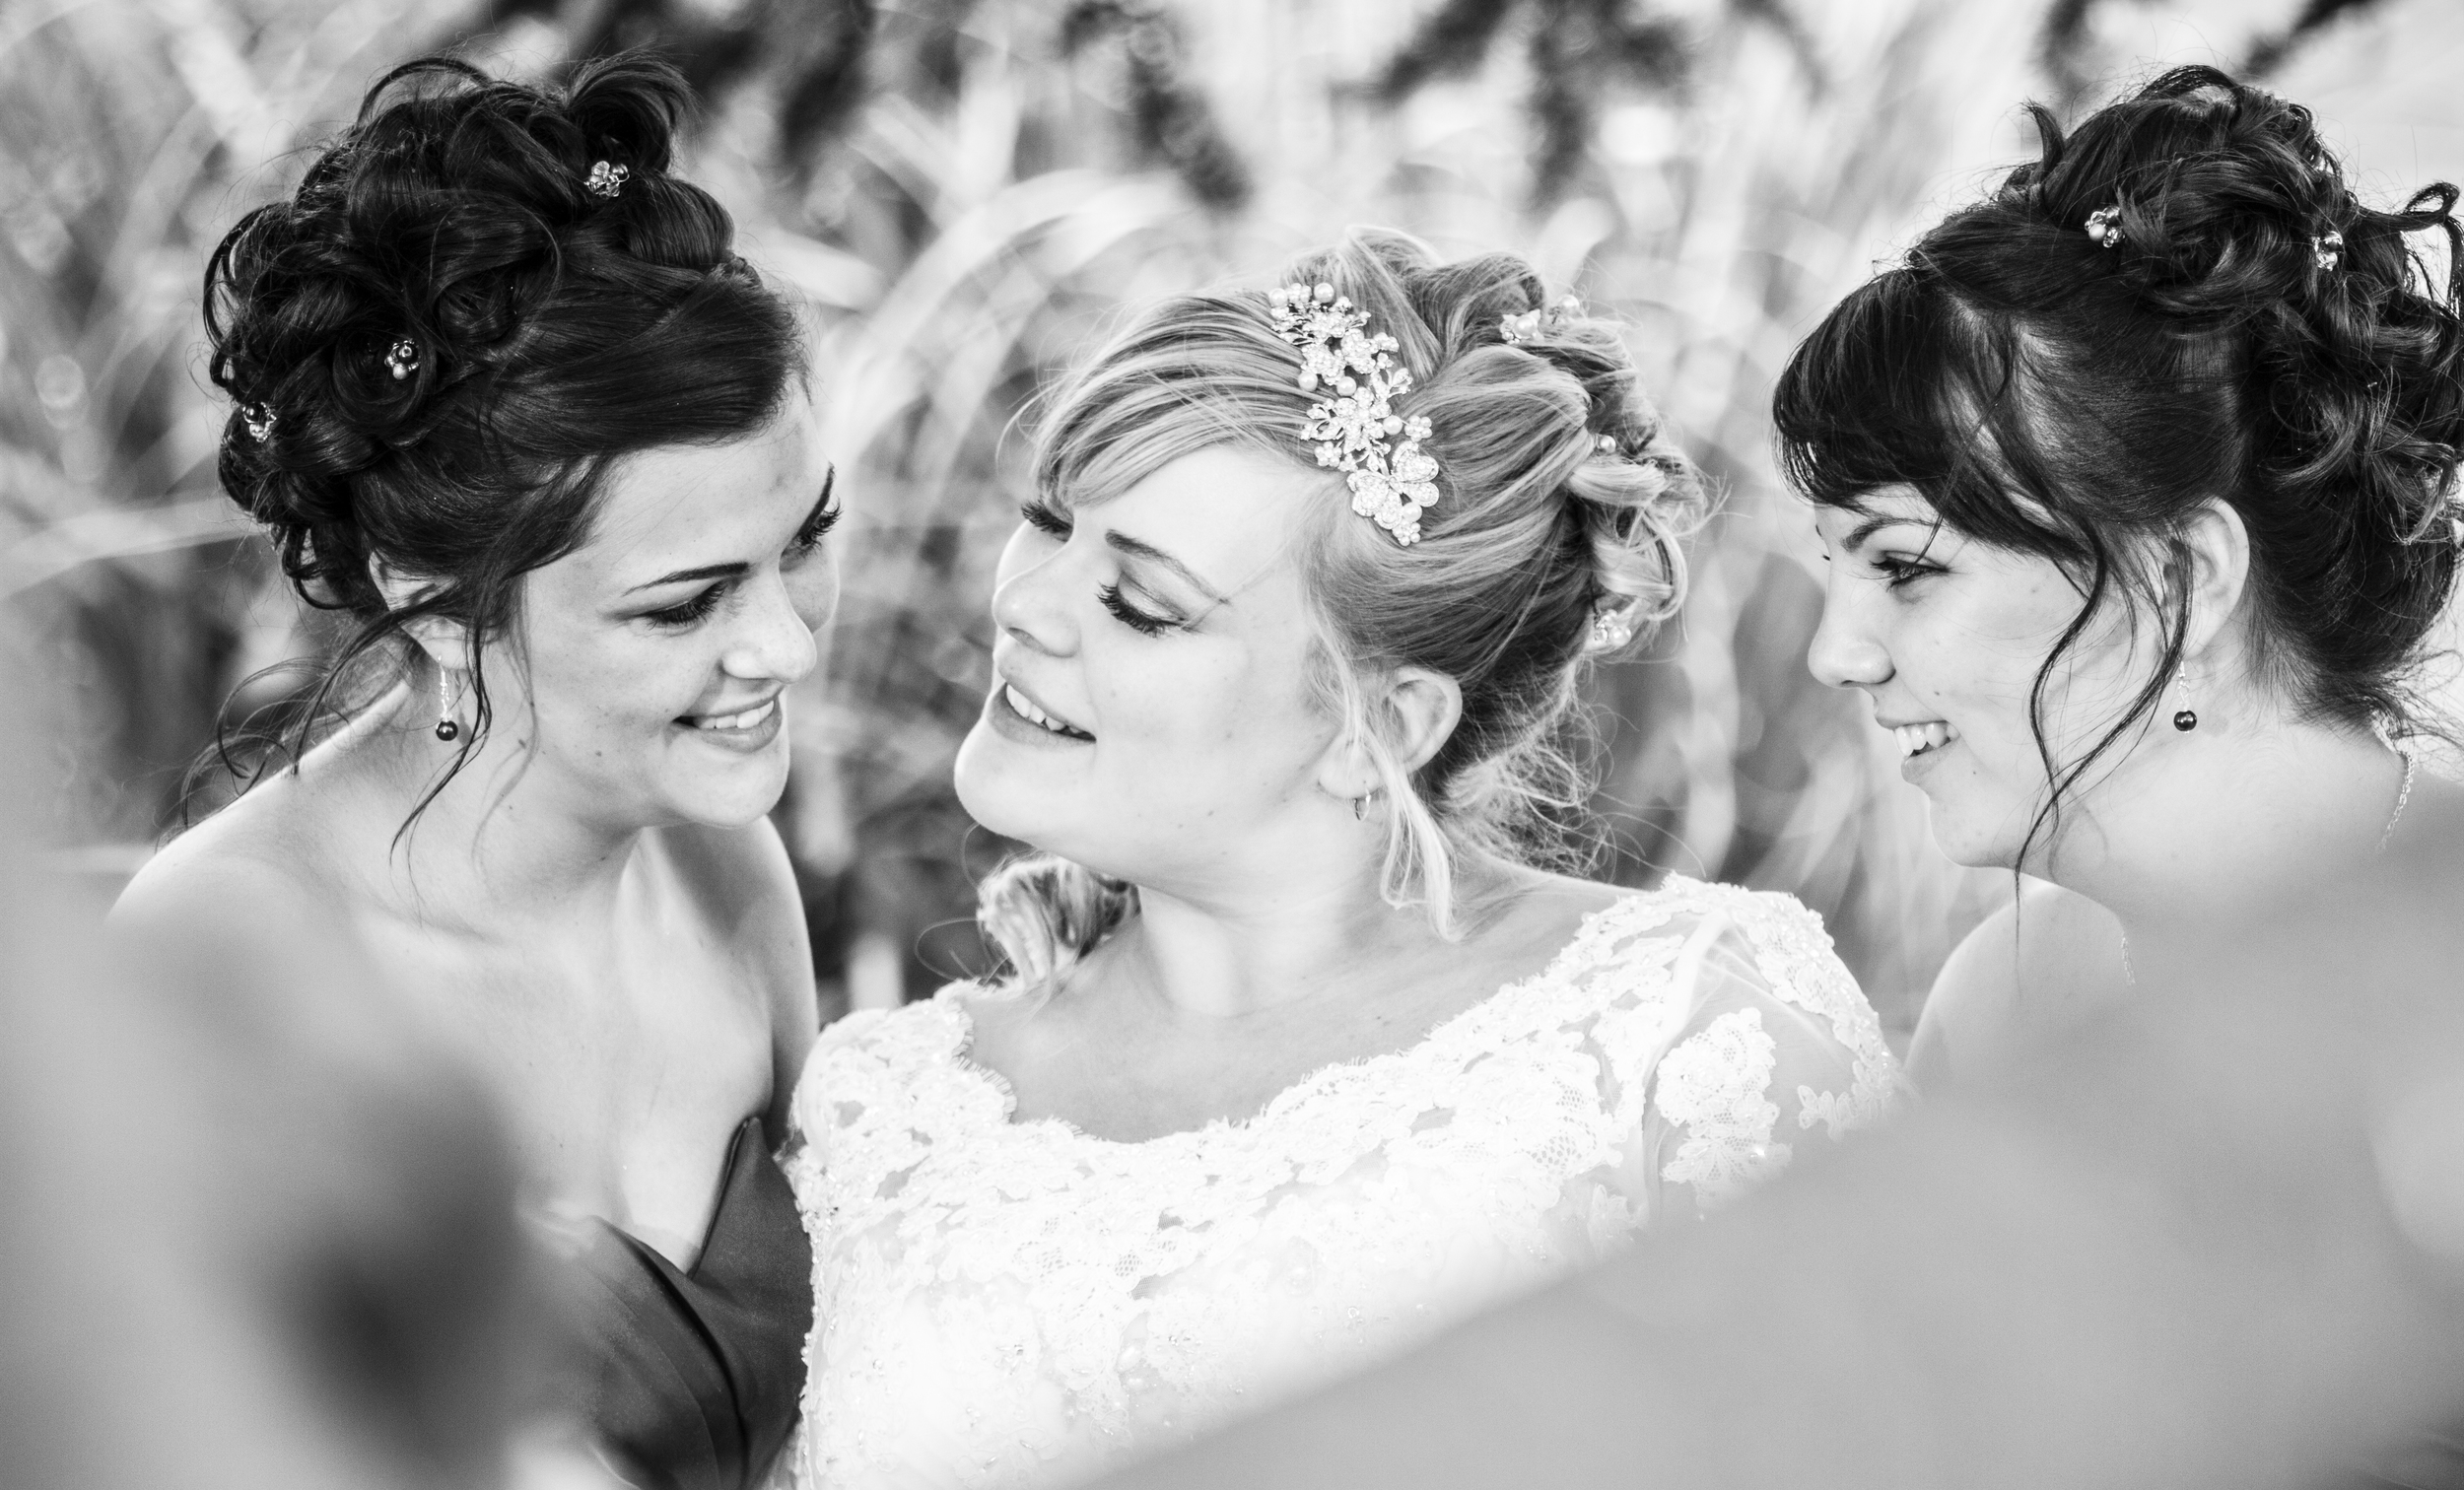 Alex & Jessica - Bristol Wedding Photographer - Wright Wedding Photography